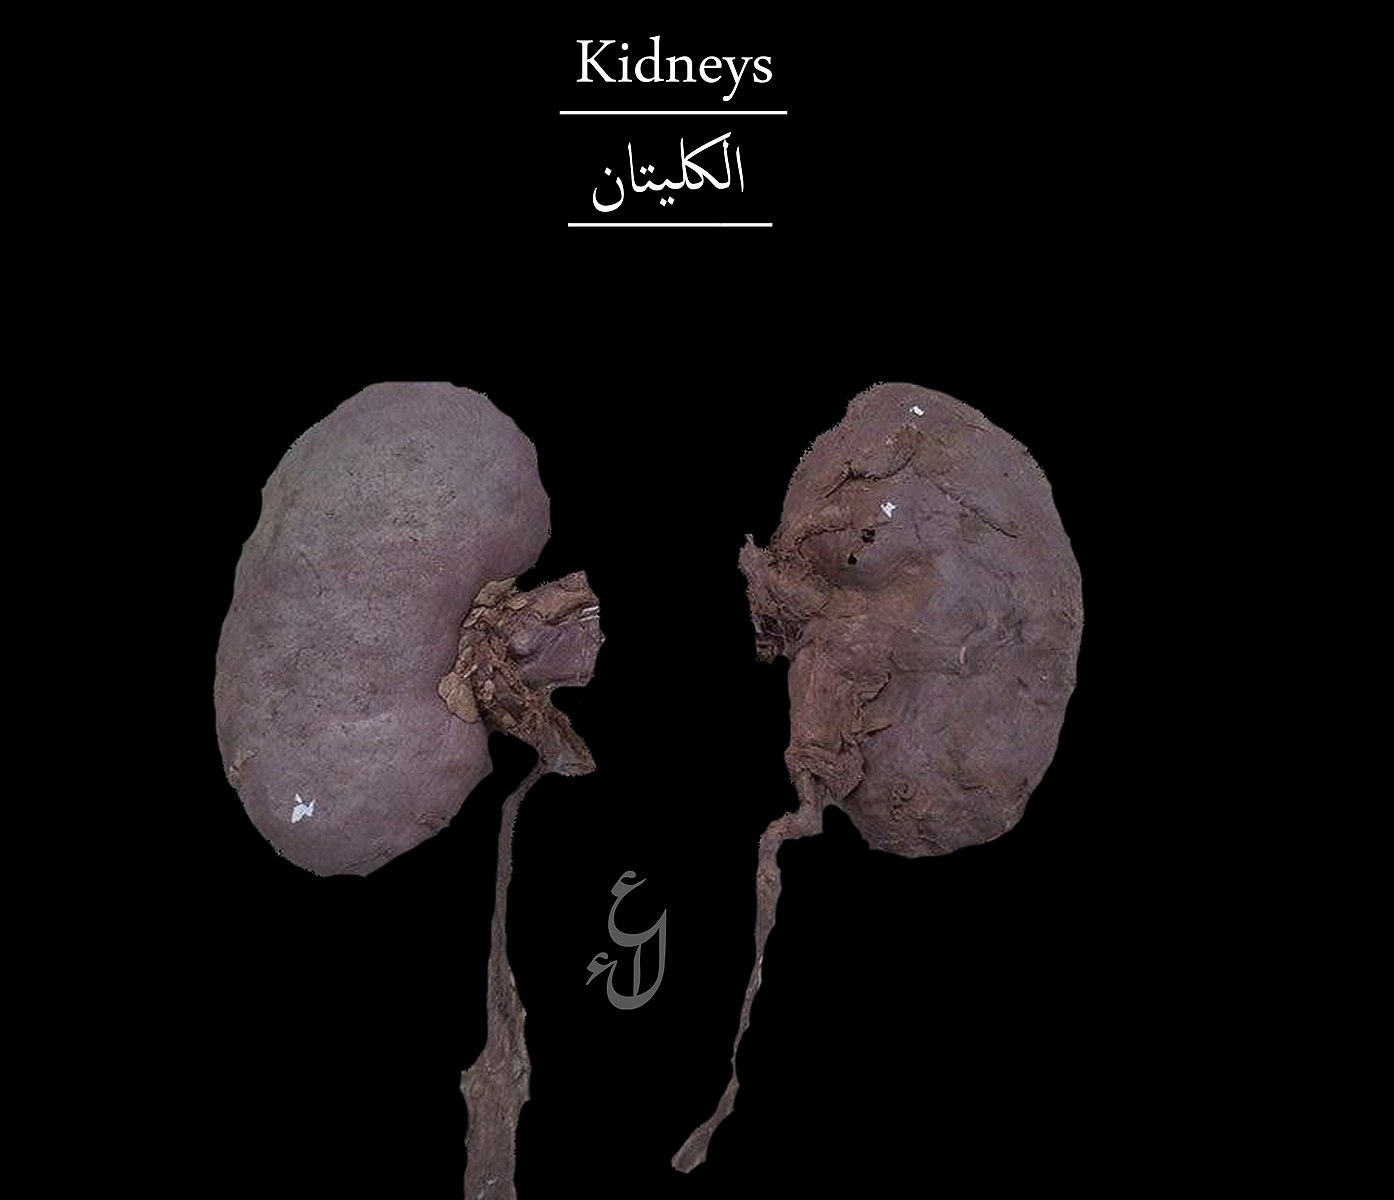 File:Human kidneys.jpg